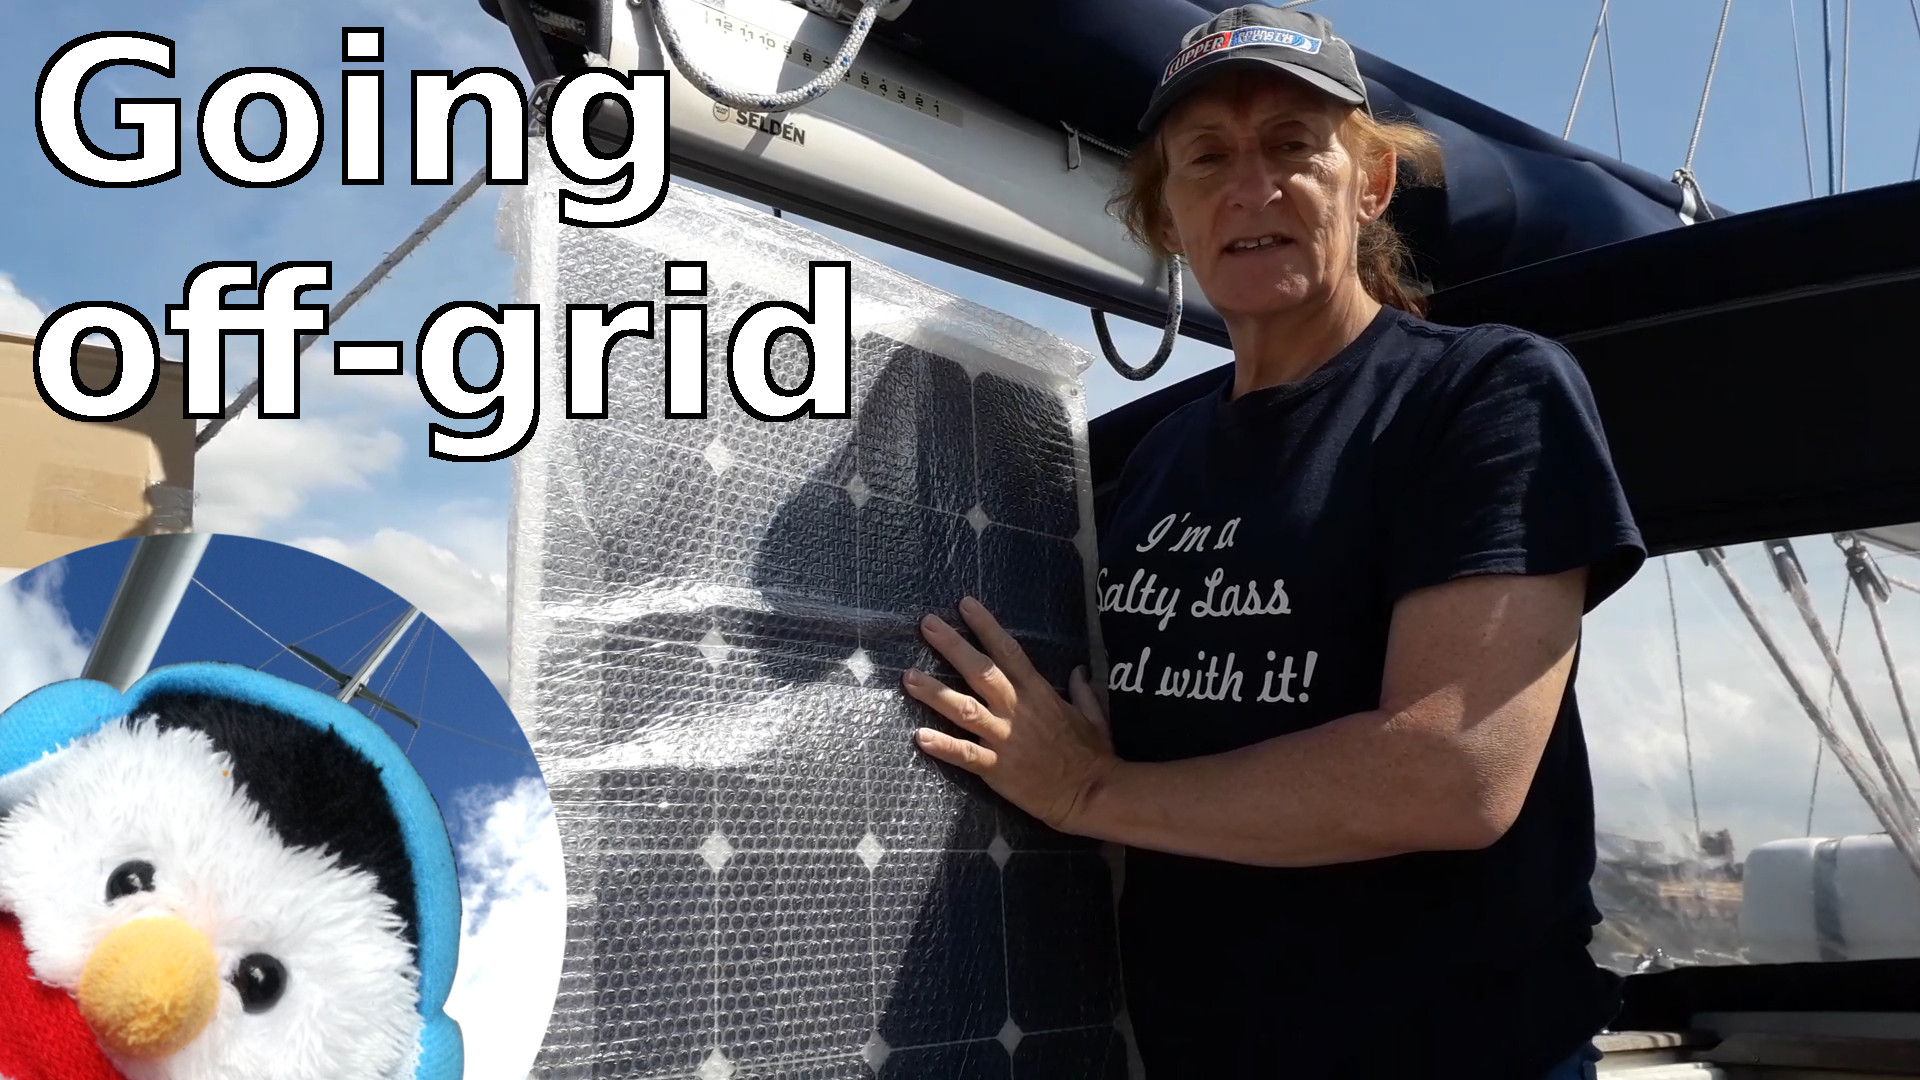 Watch our 'Going off grid' video and add comments etc.